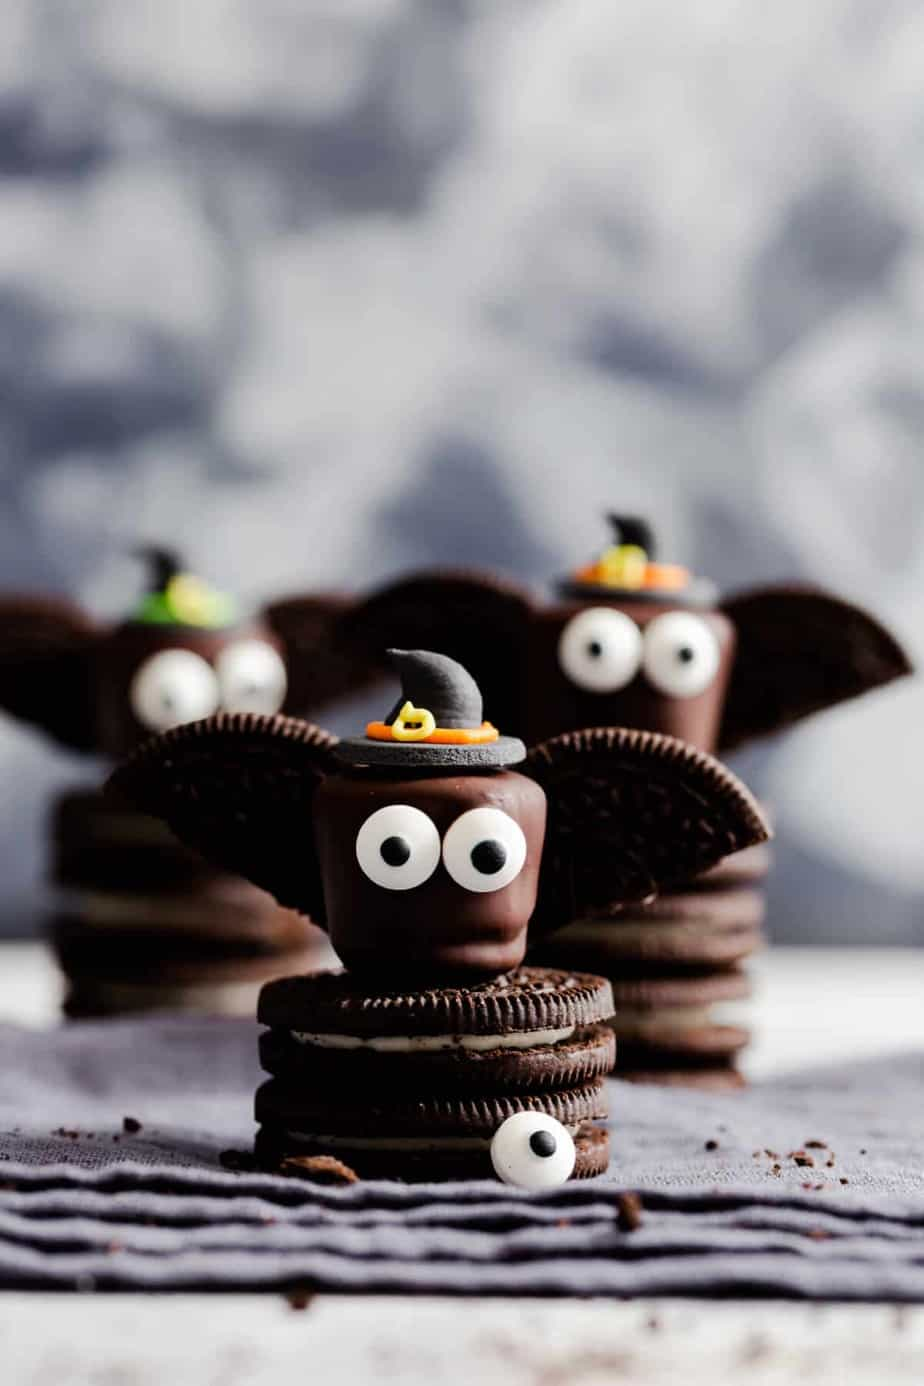 Marshmallows covered in chocolate and decorated like bats